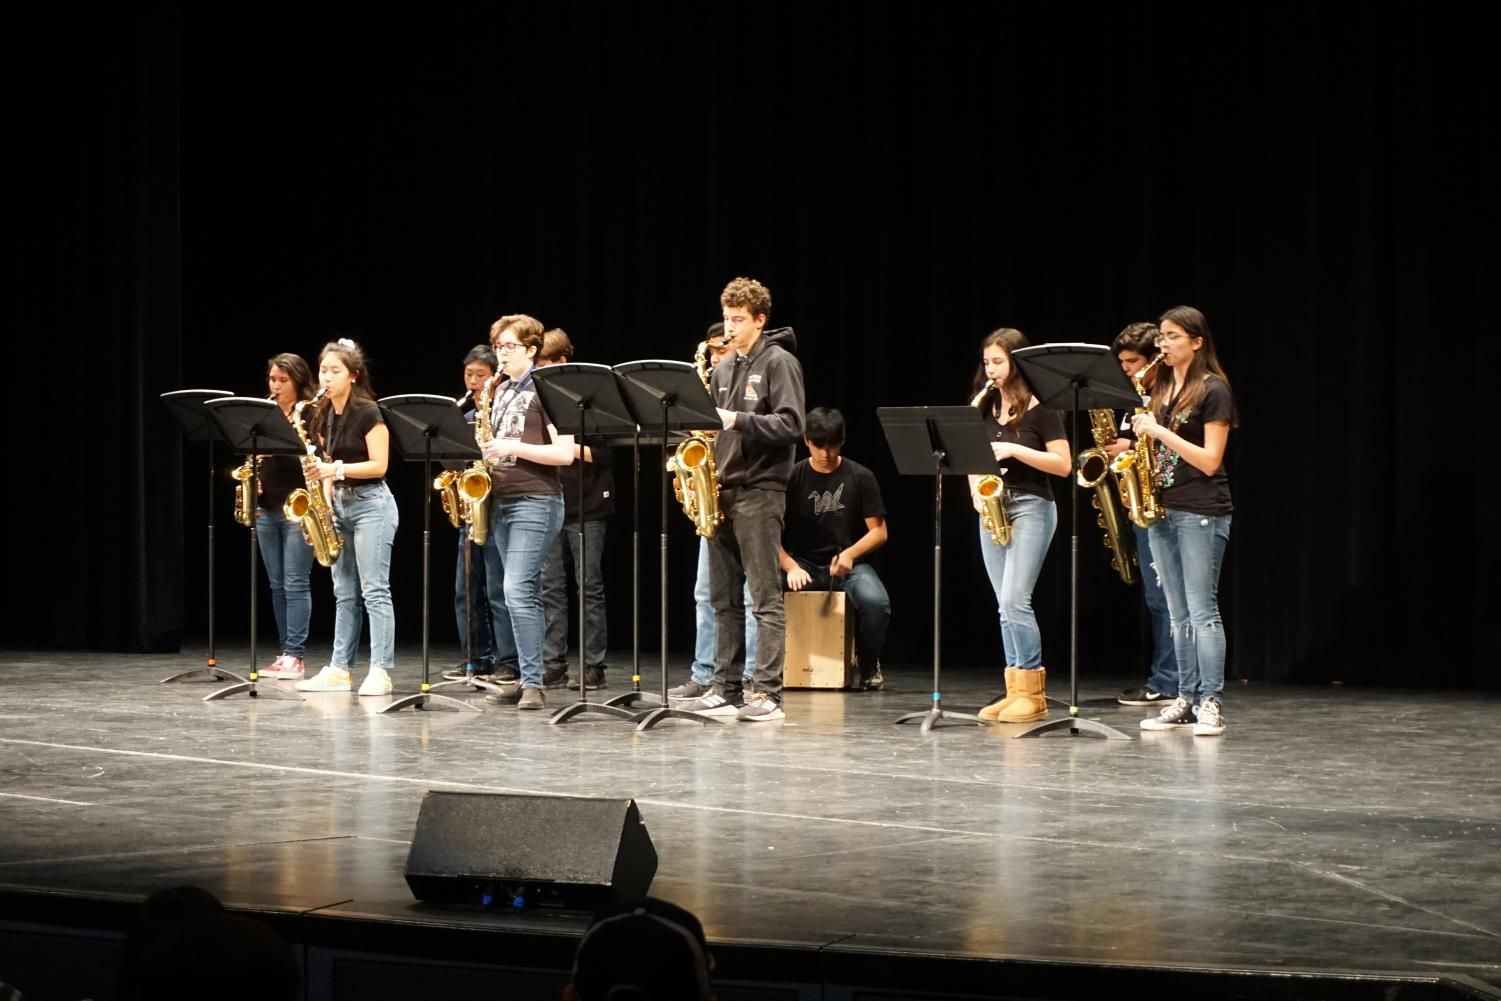 Members of the Saxophone Choir perform a self-arranged set, representing the SCHS Marching band.